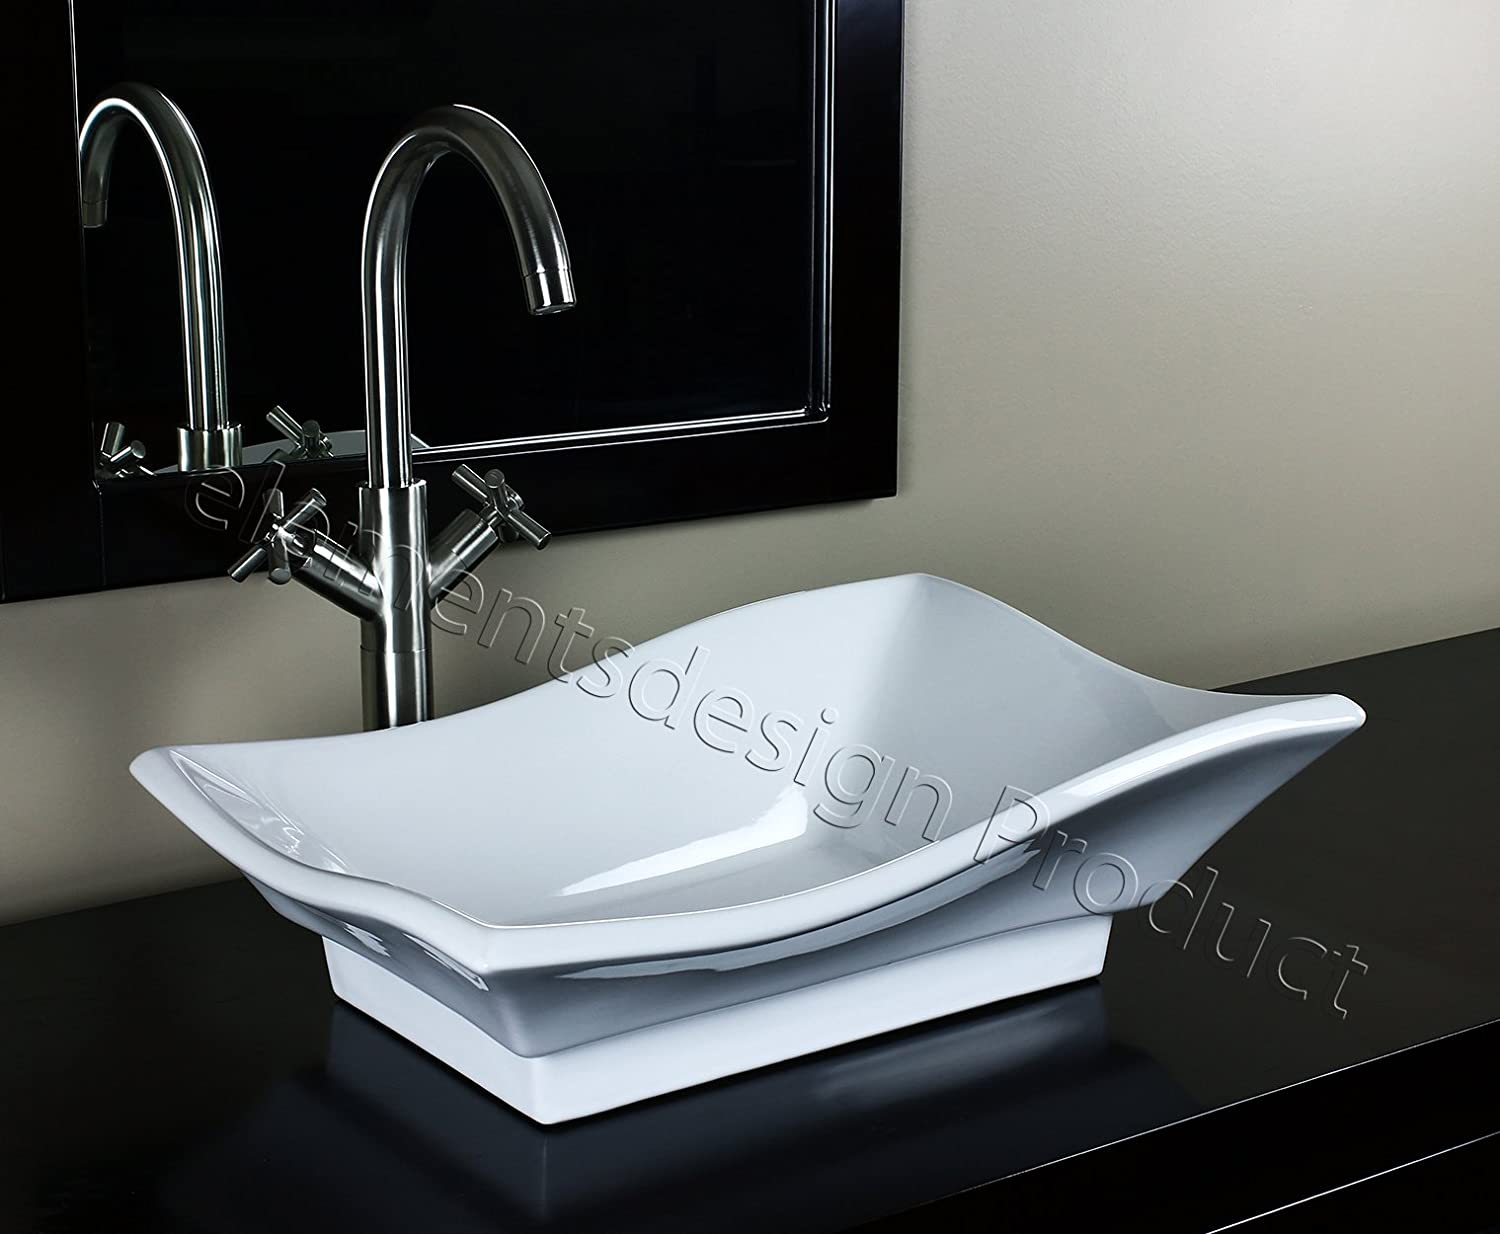 Bathroom Ceramic Vessel Sink 7459L6 With Brushed Nickel Faucet Drain